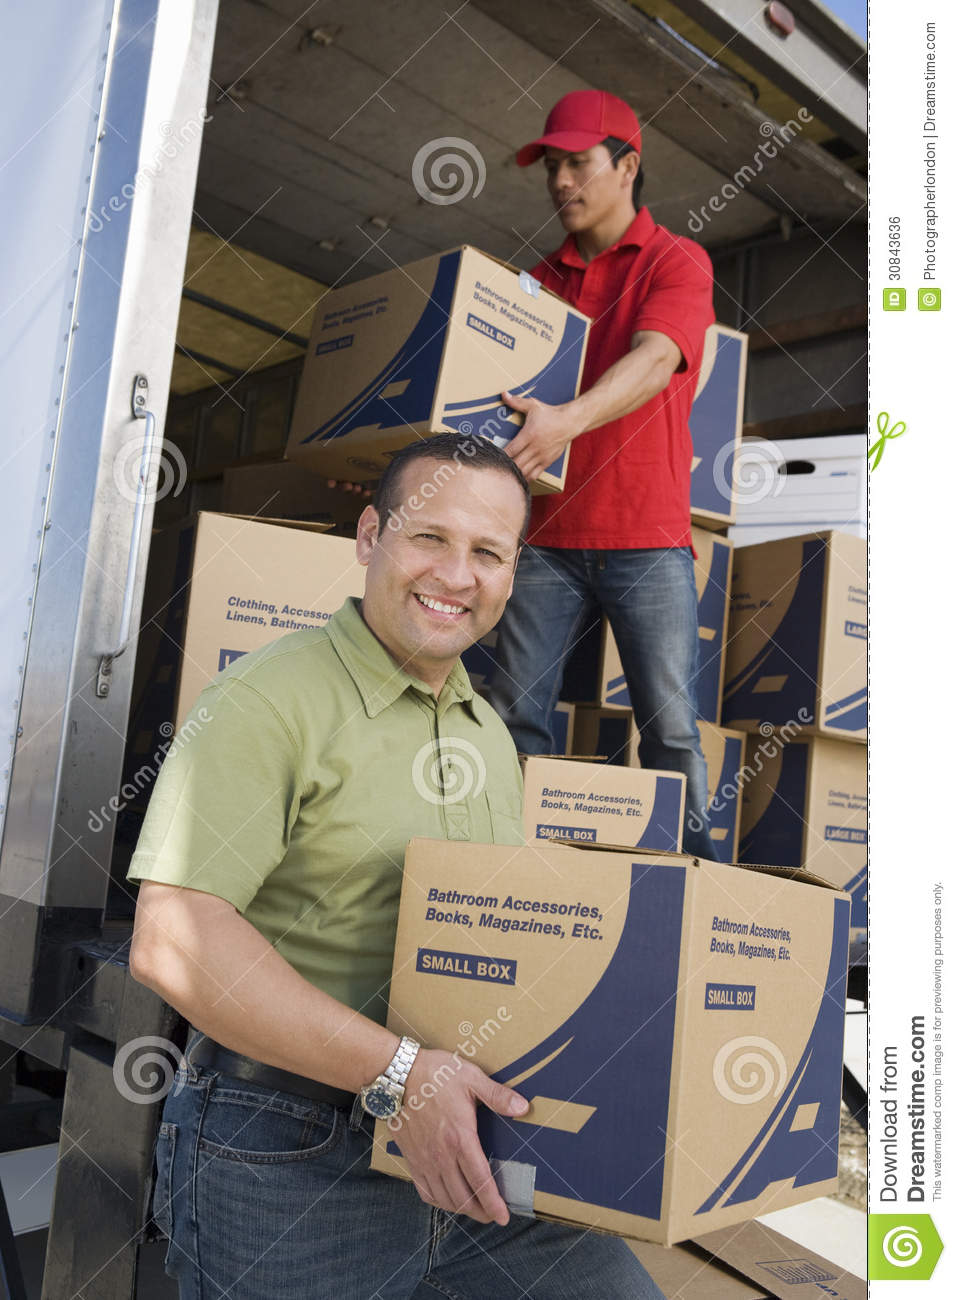 Muebles House Man With Worker Unloading Truck Of Cardboard Boxes Royalty